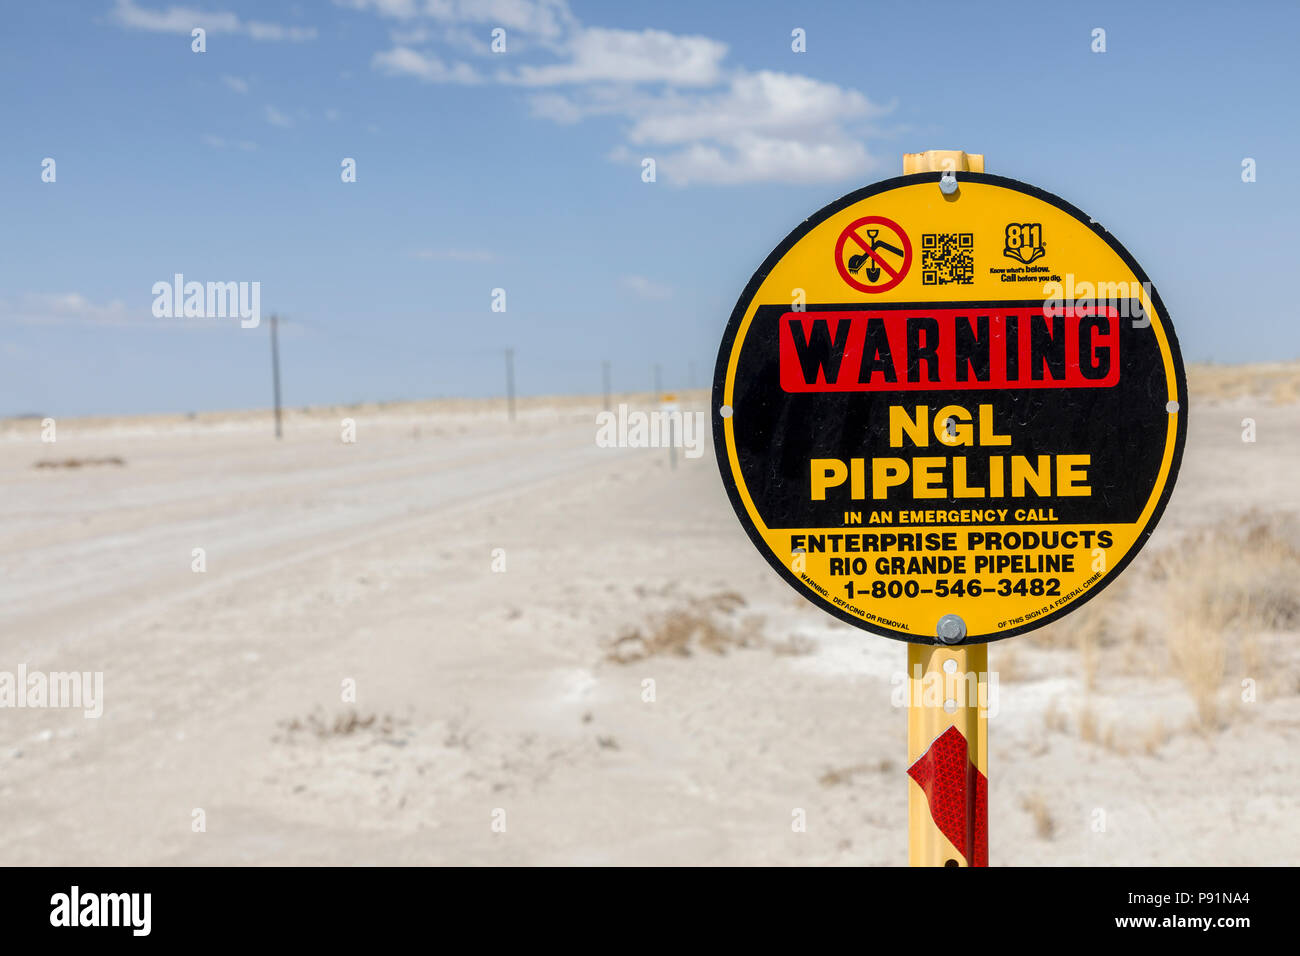 Warning sign for buried pipeline in desert, New Mexico, USA - Stock Image